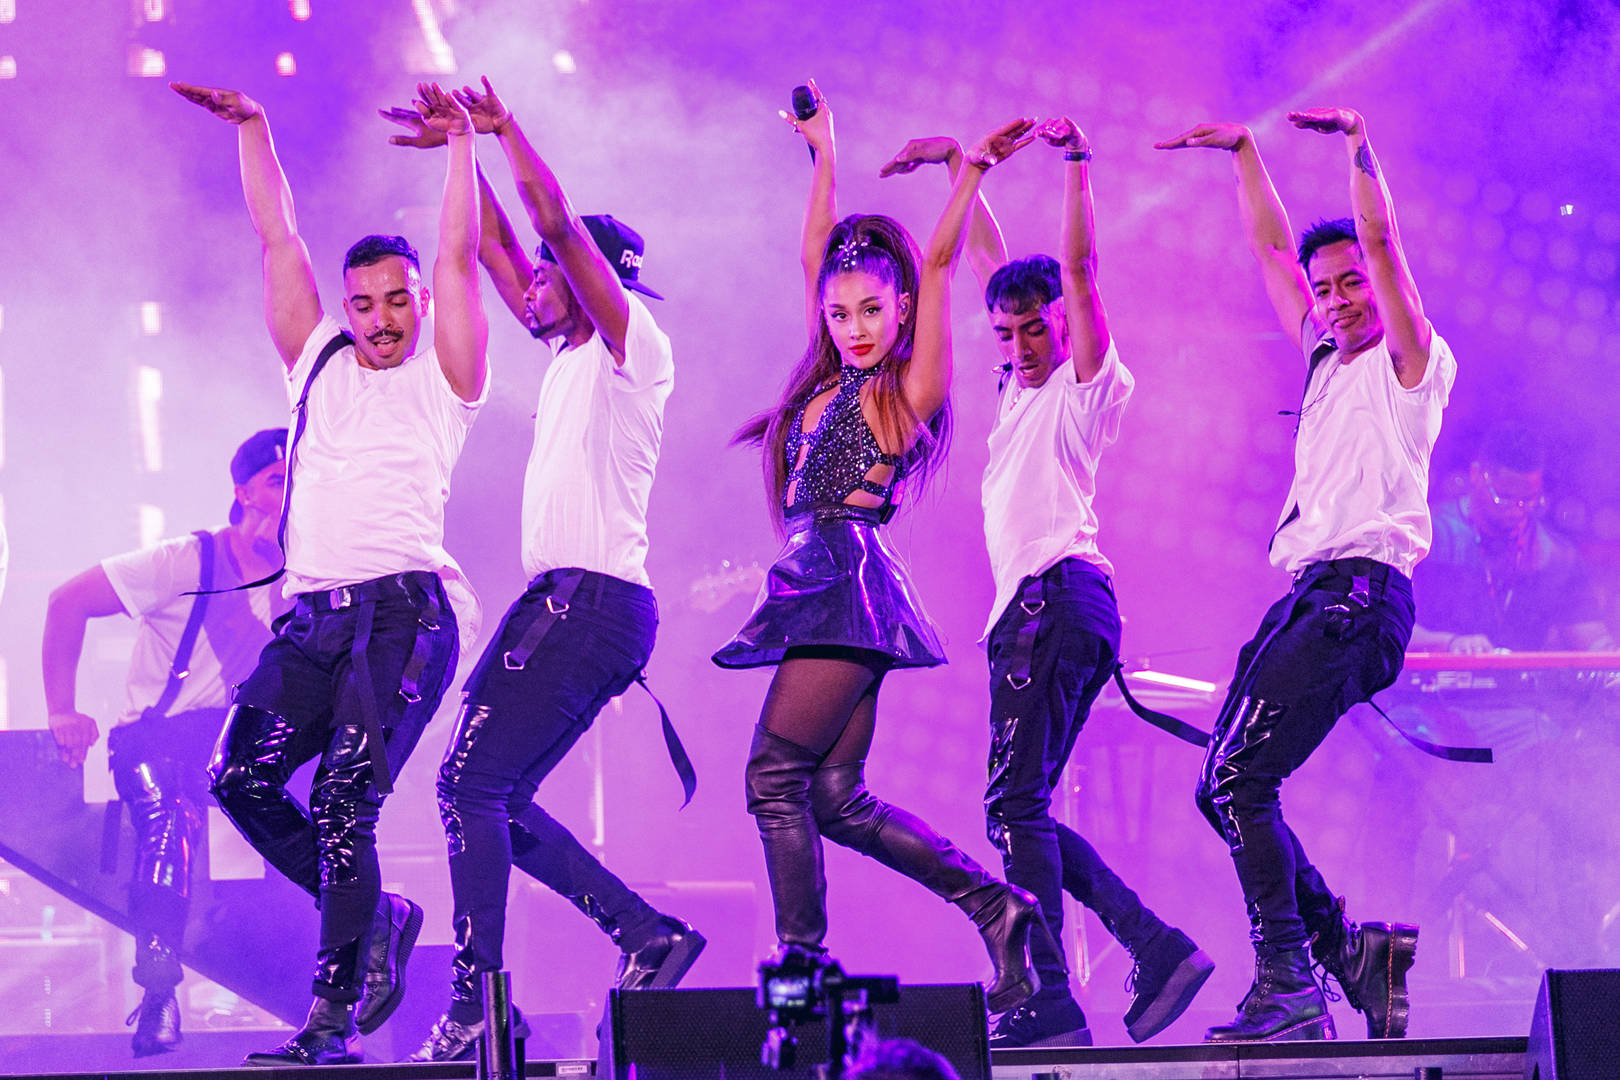 """Ariana Grande's Strict Photo Policy On """"Sweetener Tour"""" Is Being Protested By Media"""